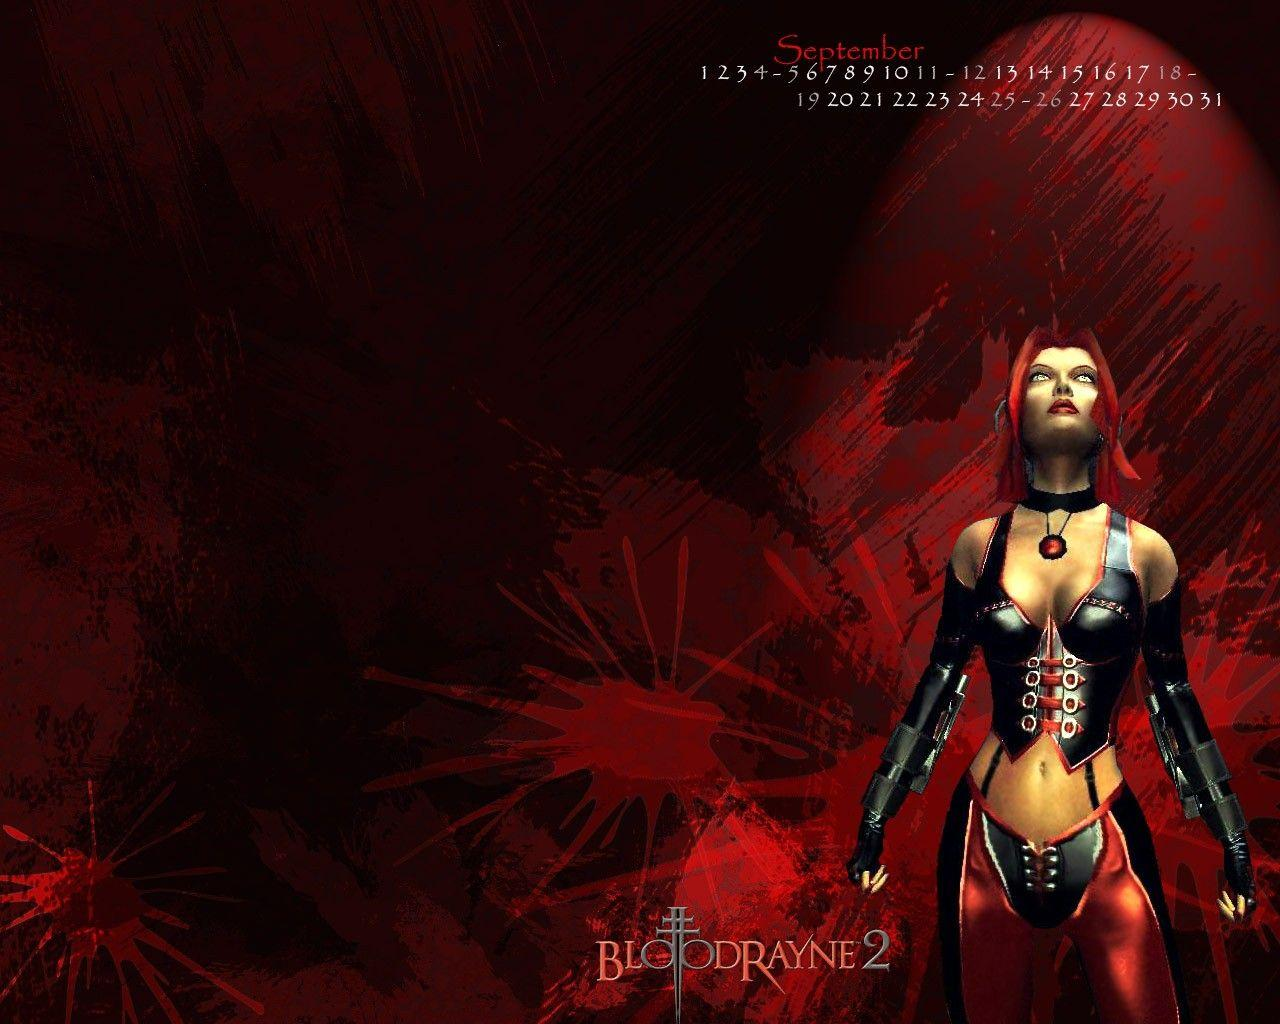 Bloodrayne Wallpapers Wallpaper Cave